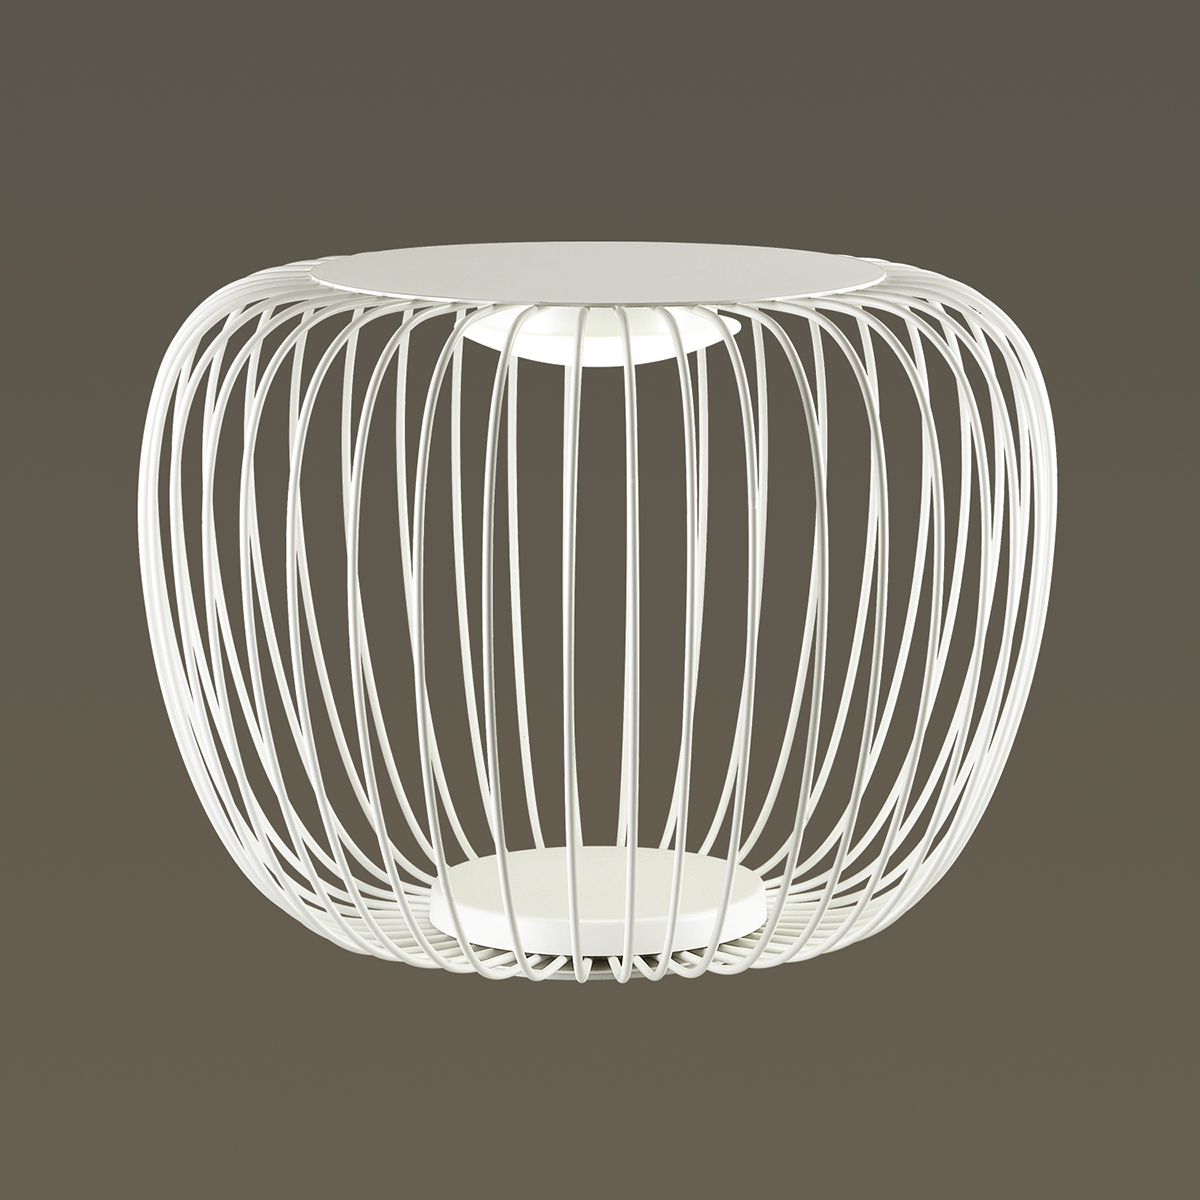 Настольная лампа ODEON LIGHT арт. 4105/7TL